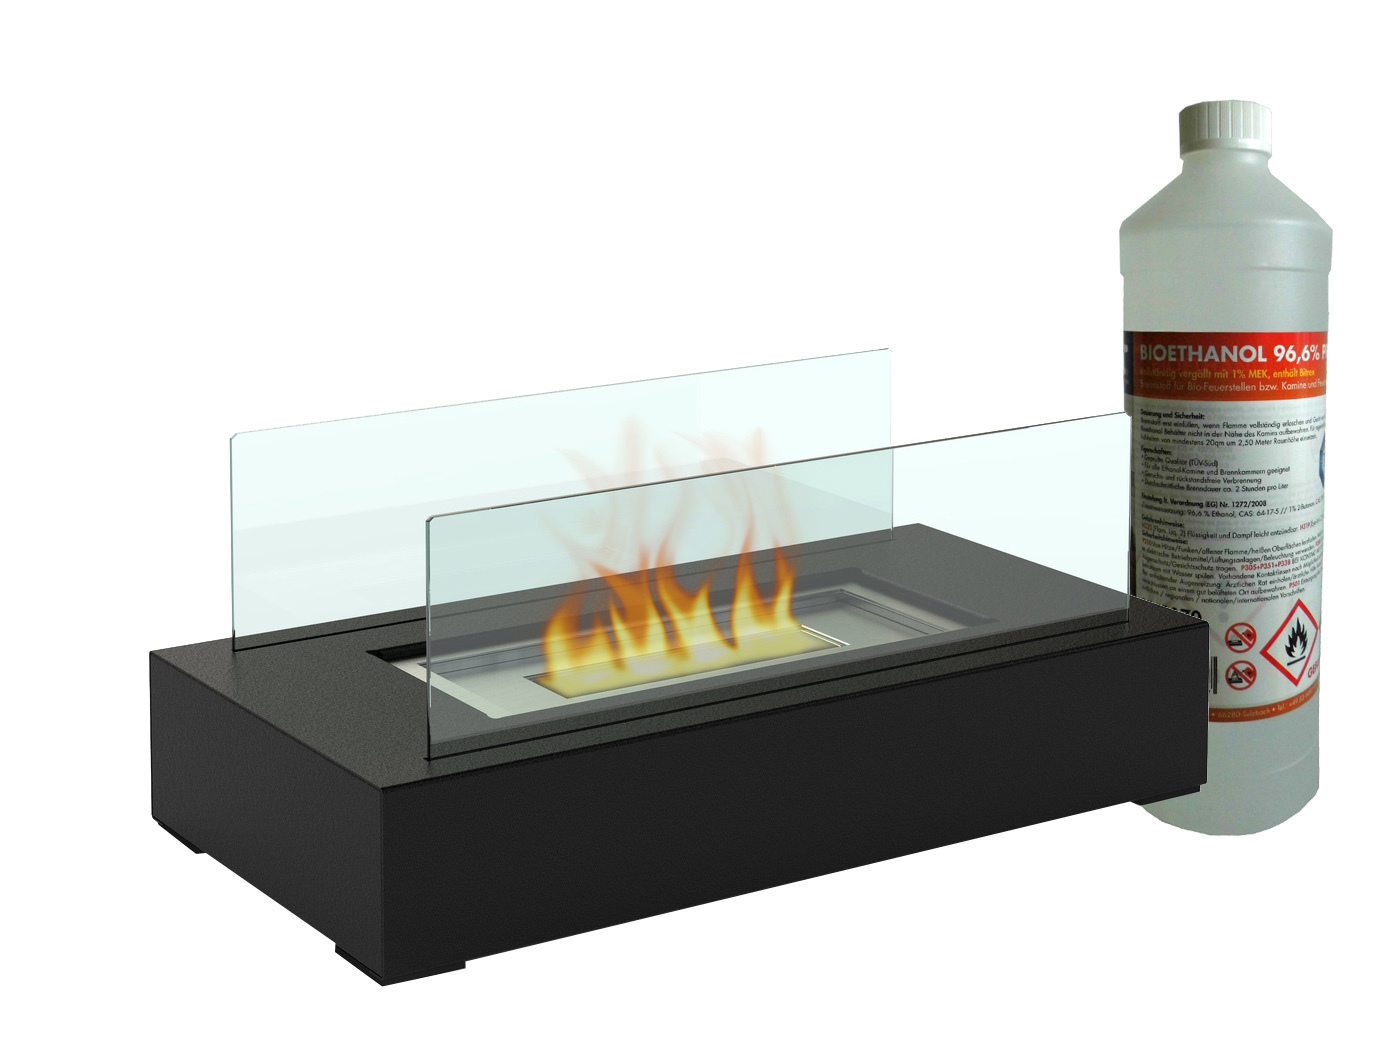 tischkamin dekofeuer tischfeuer bio ethanol kamin metall mit sicherheitsglas eur 39 99. Black Bedroom Furniture Sets. Home Design Ideas